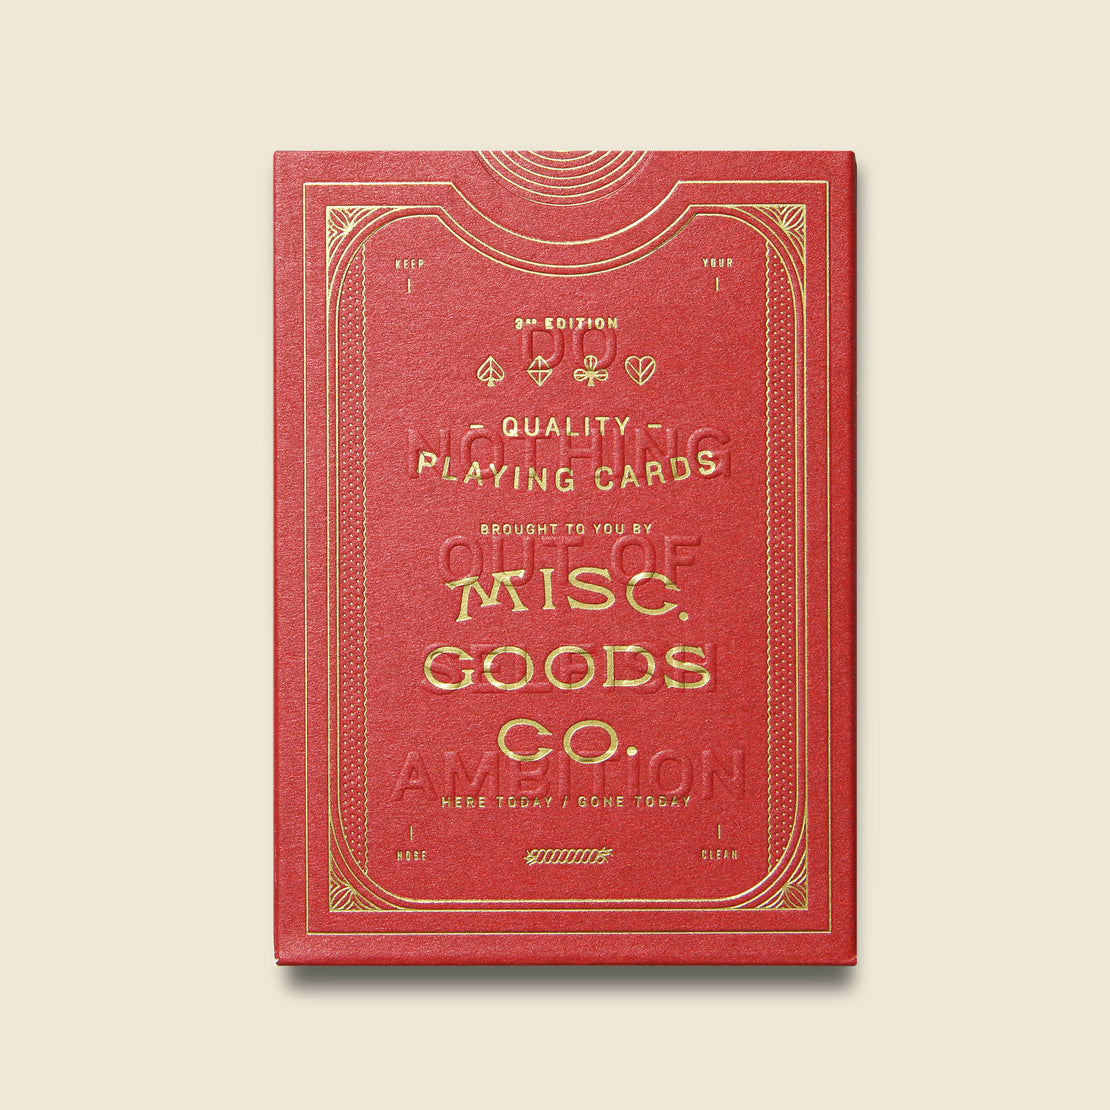 Misc Goods Co. Playing Cards - Red